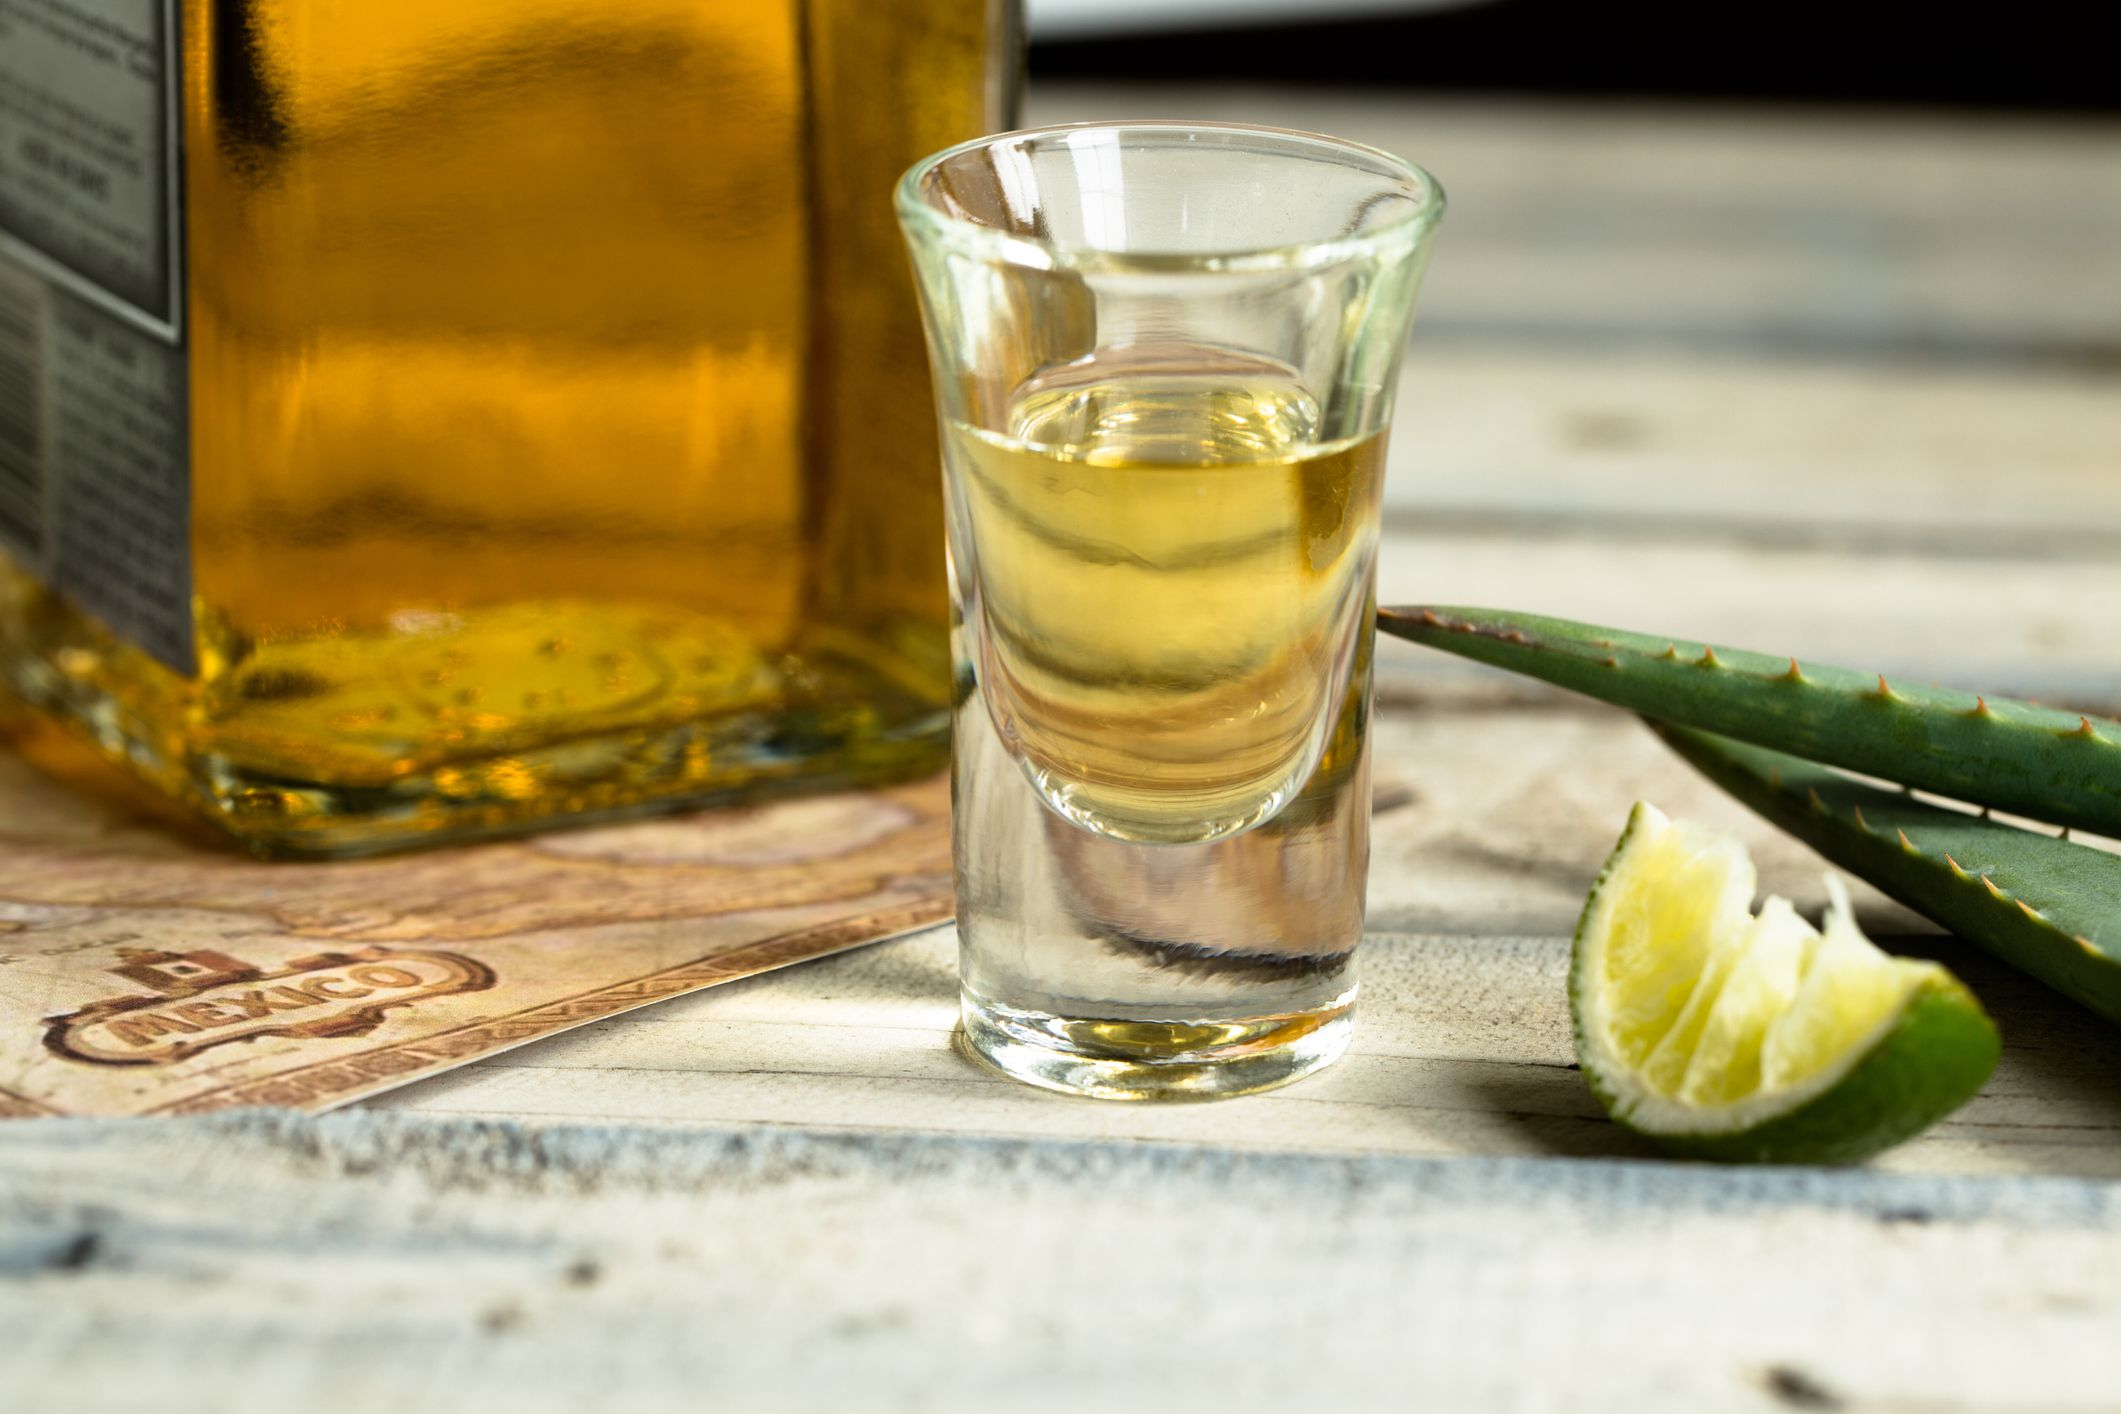 10 Best Tequilas for Margaritas and Shots in 2020